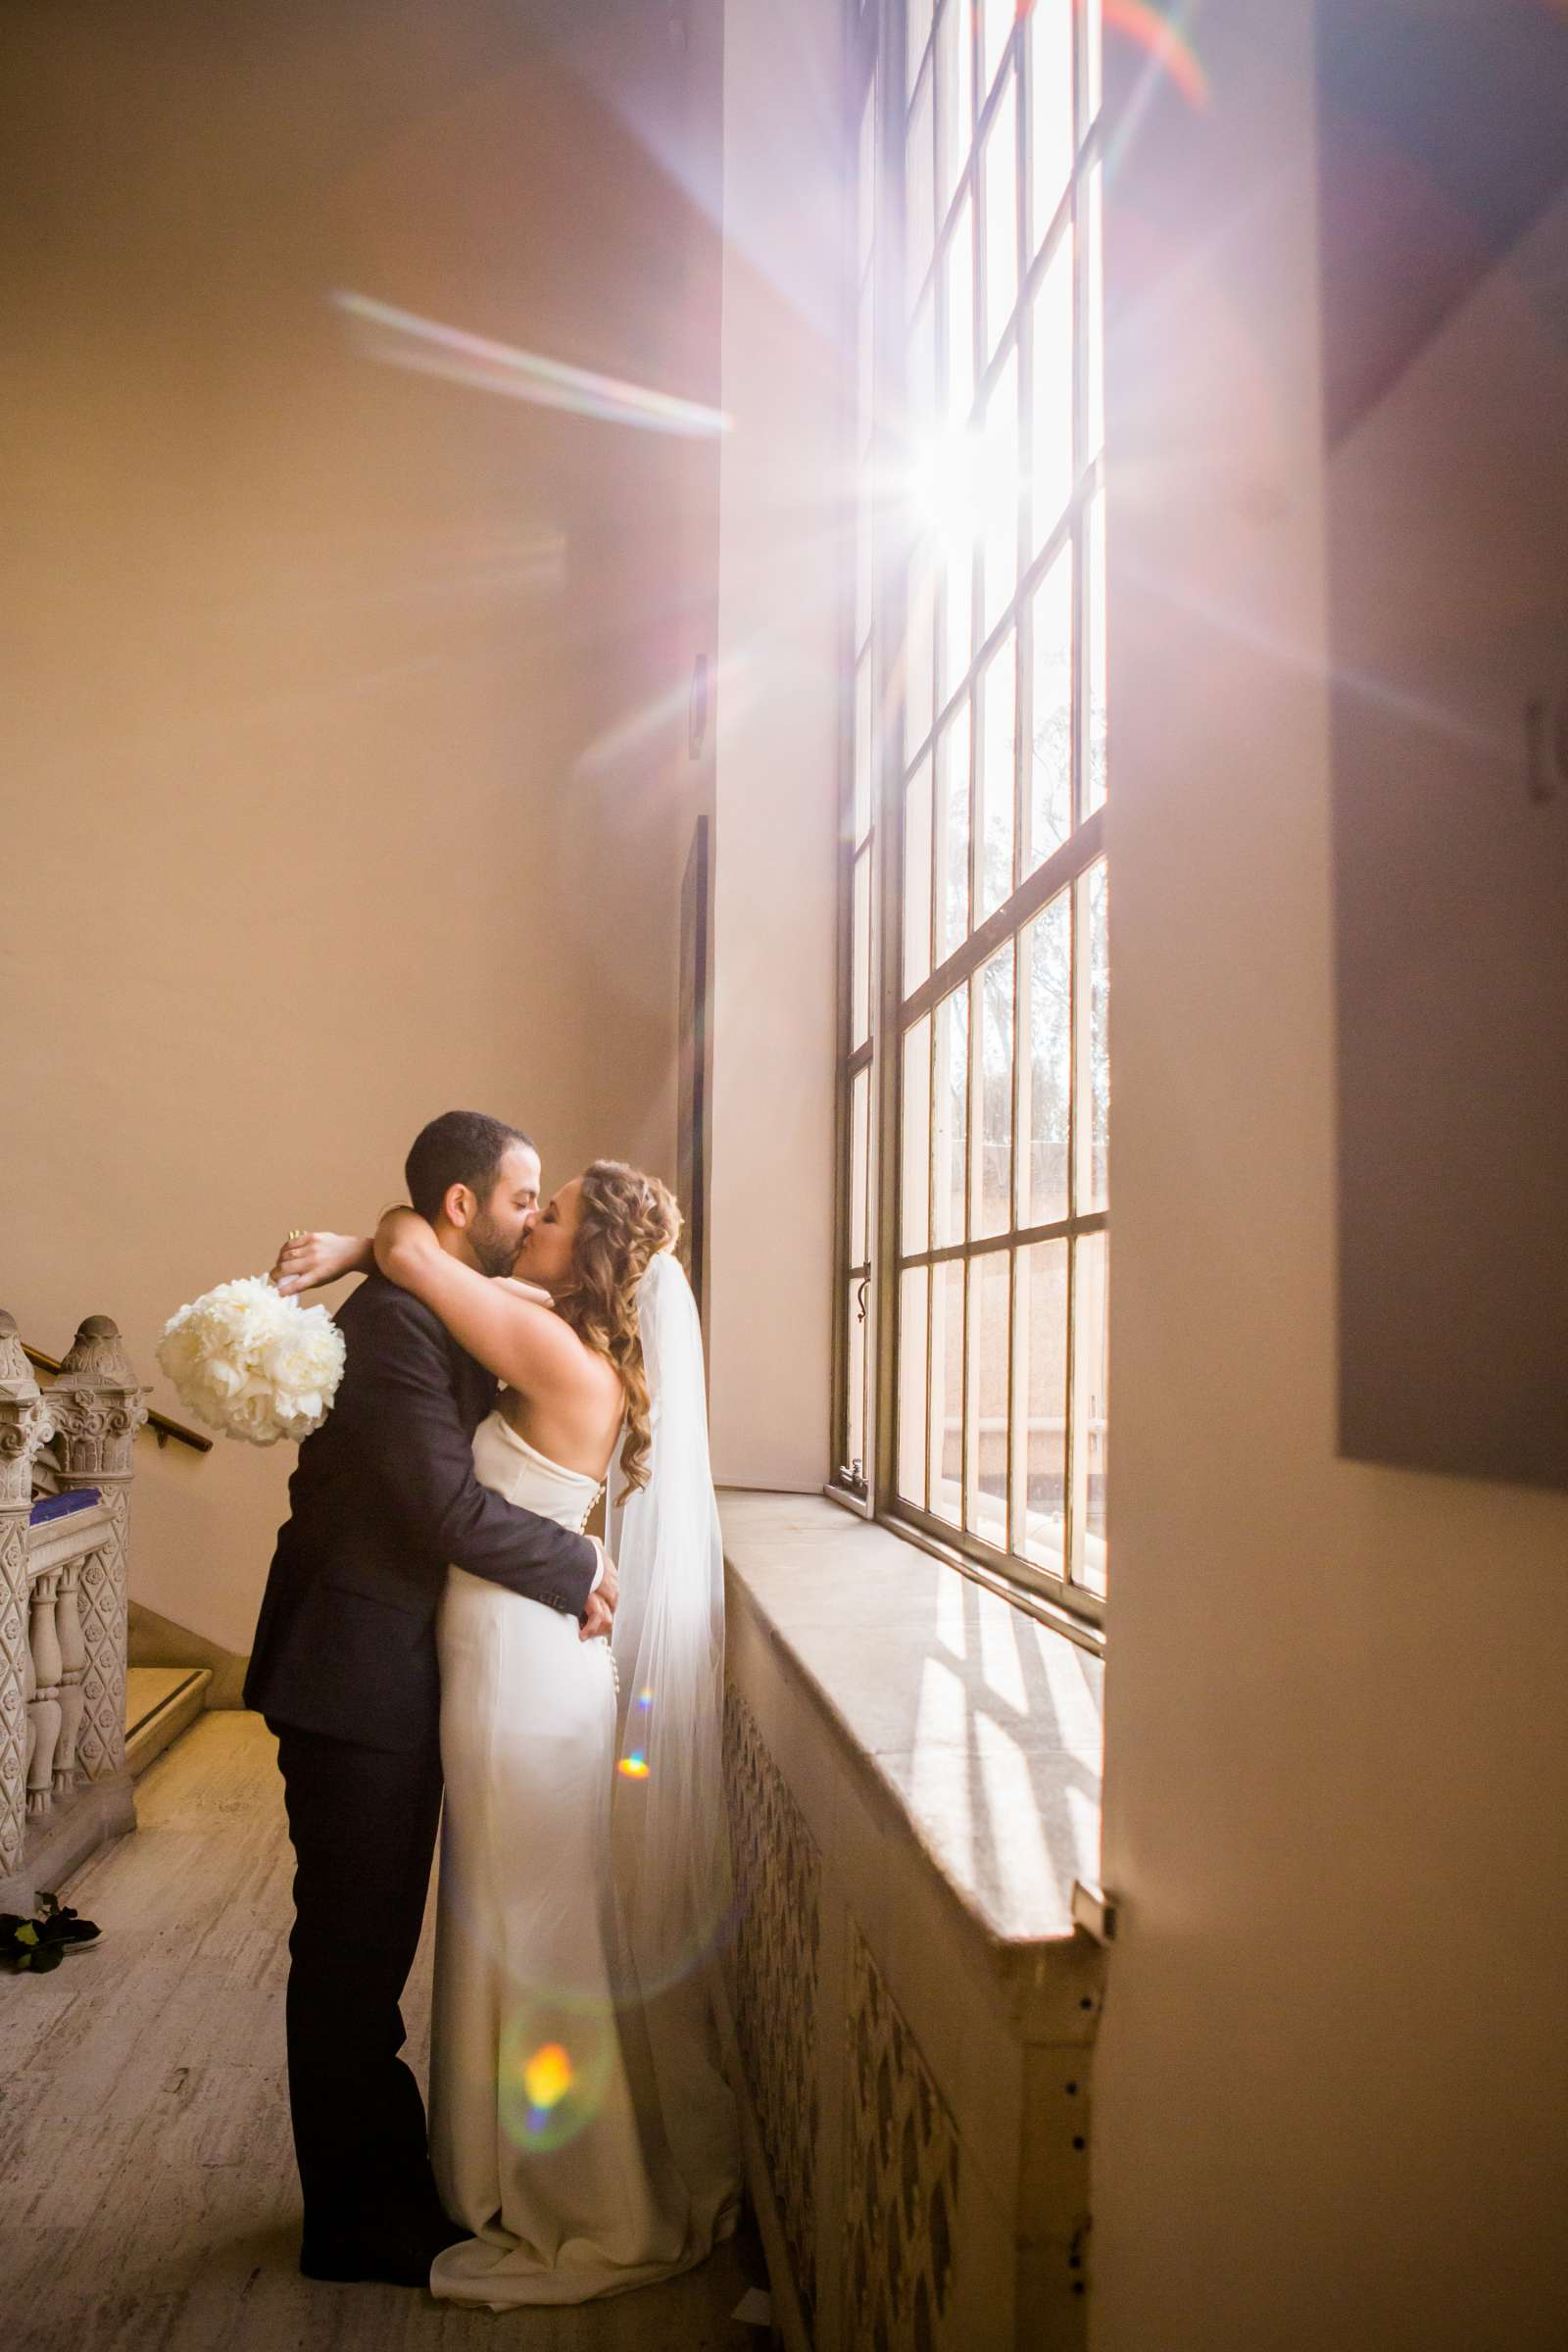 San Diego Museum of Art Wedding coordinated by First Comes Love Weddings & Events, Ruthie and Larry Wedding Photo #236839 by True Photography